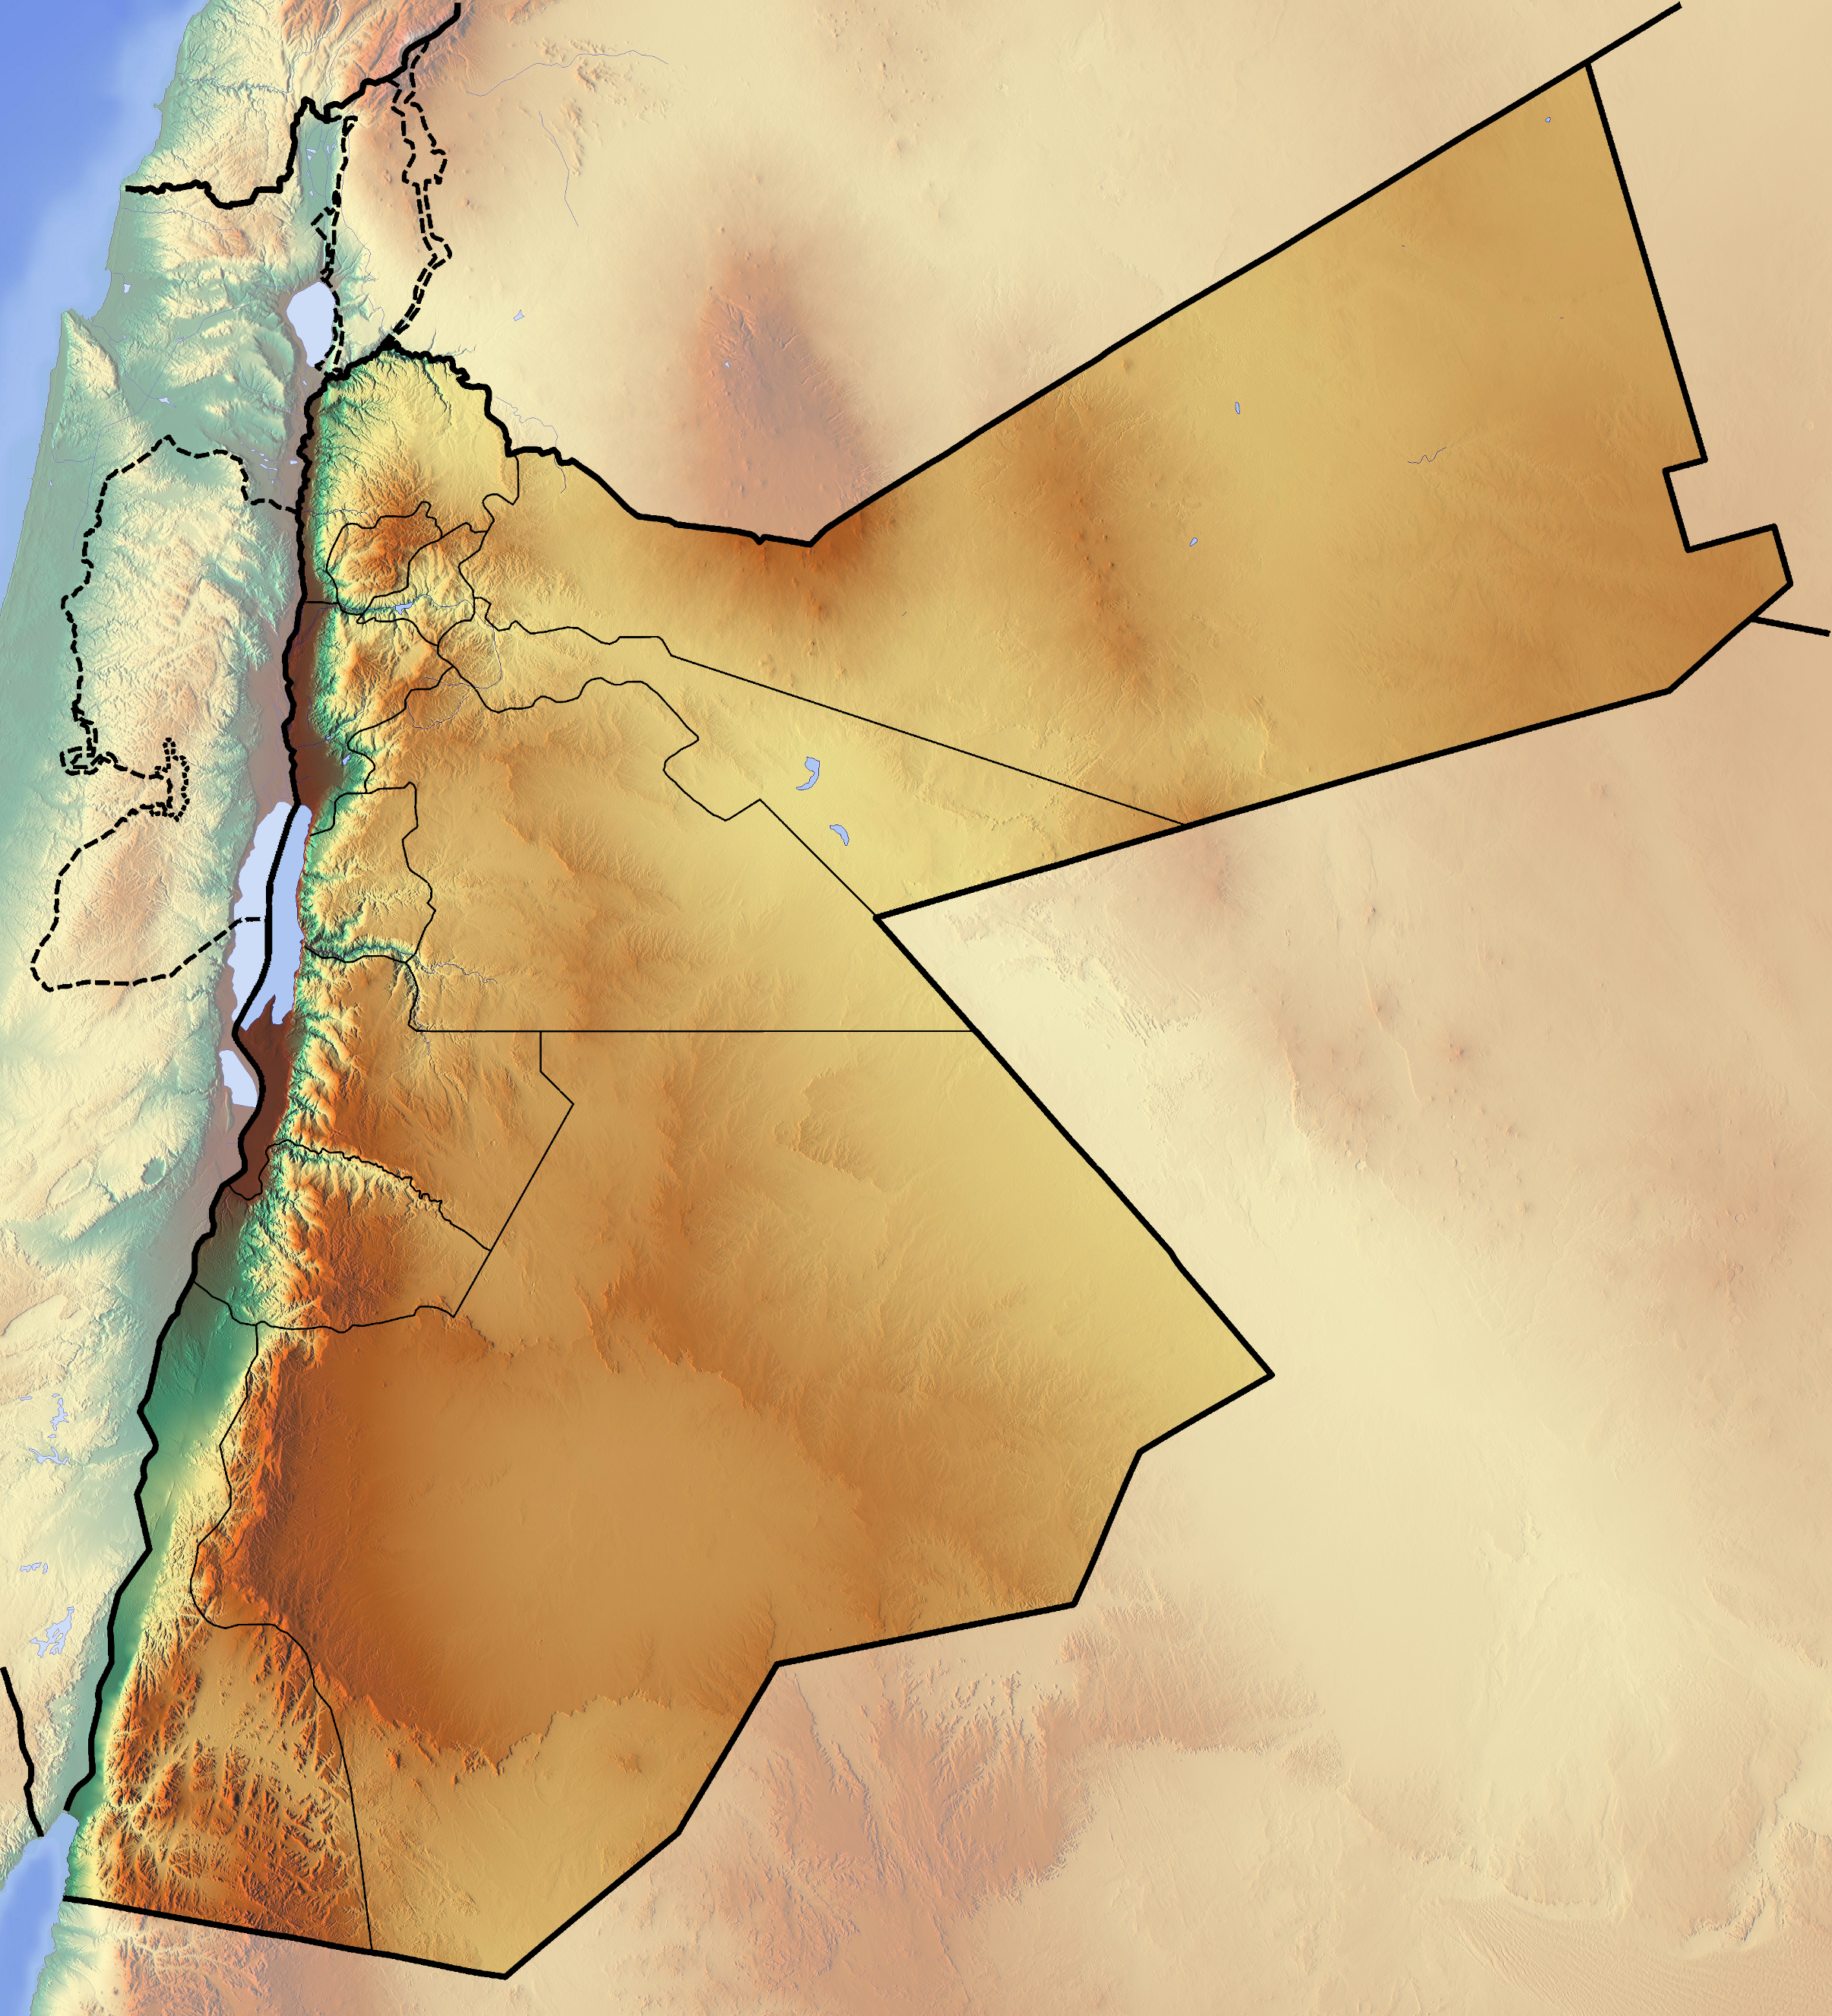 FileJordan location map Topographicpng Wikimedia Commons